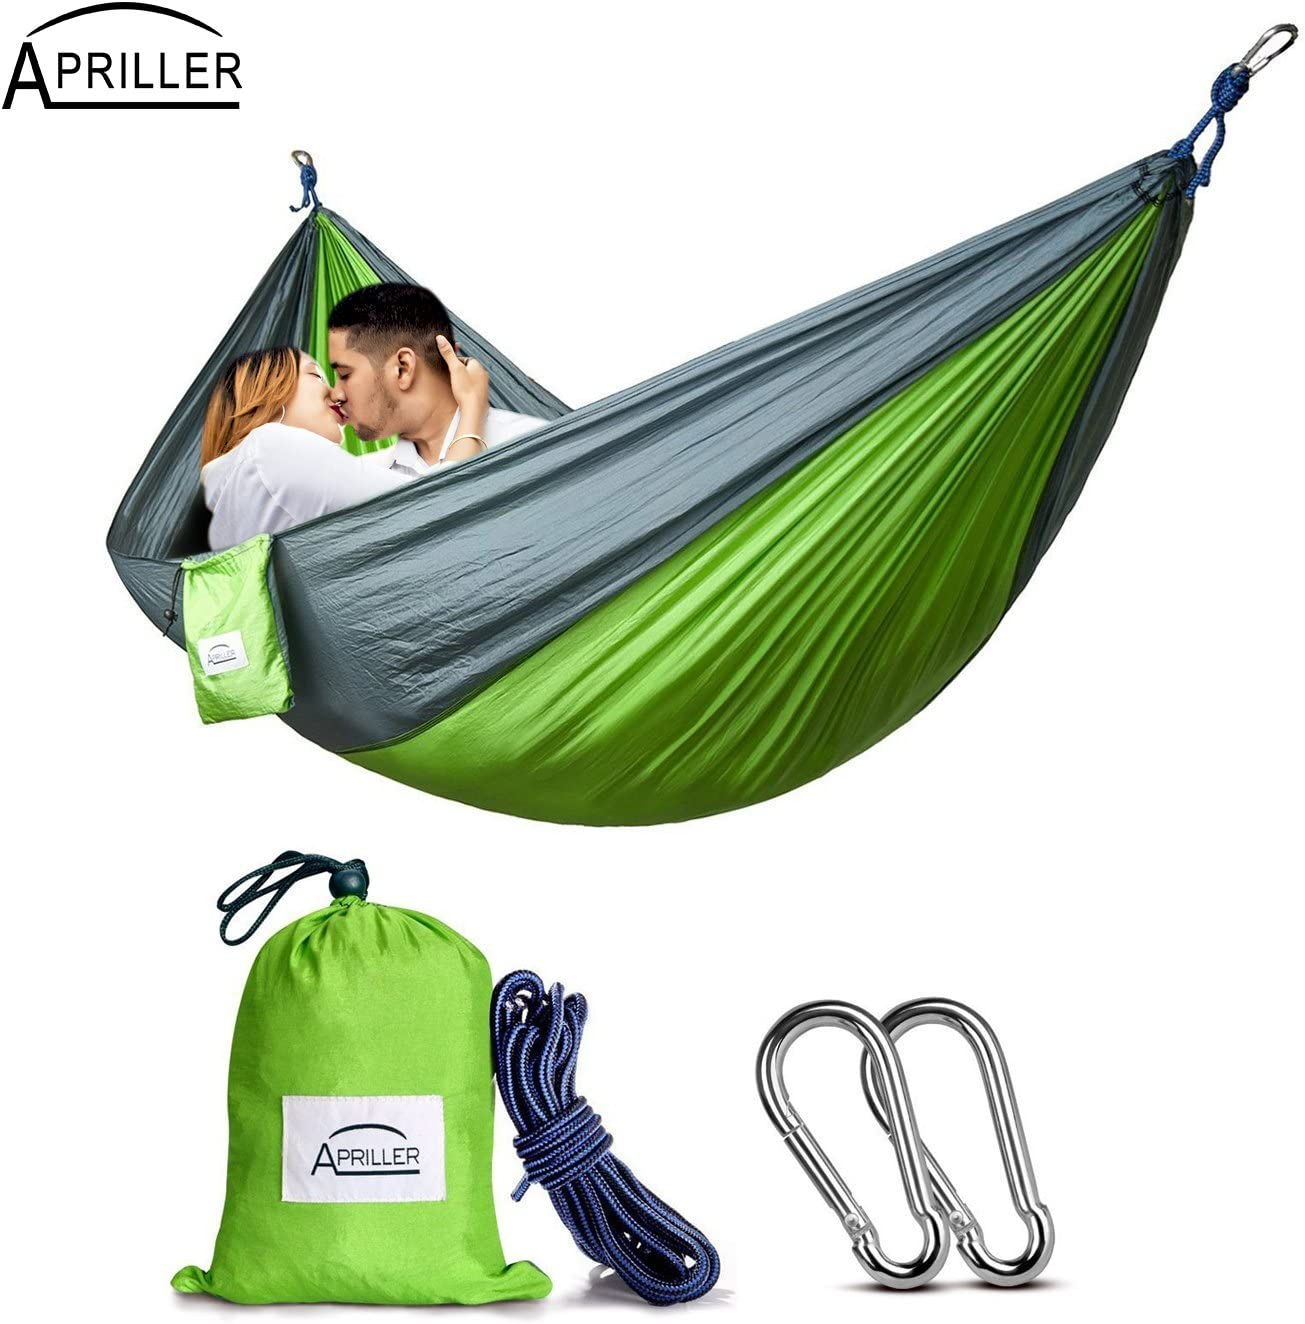 Apriller Double Portable Camping Hammock - 600 lb Weight Capacity - Green